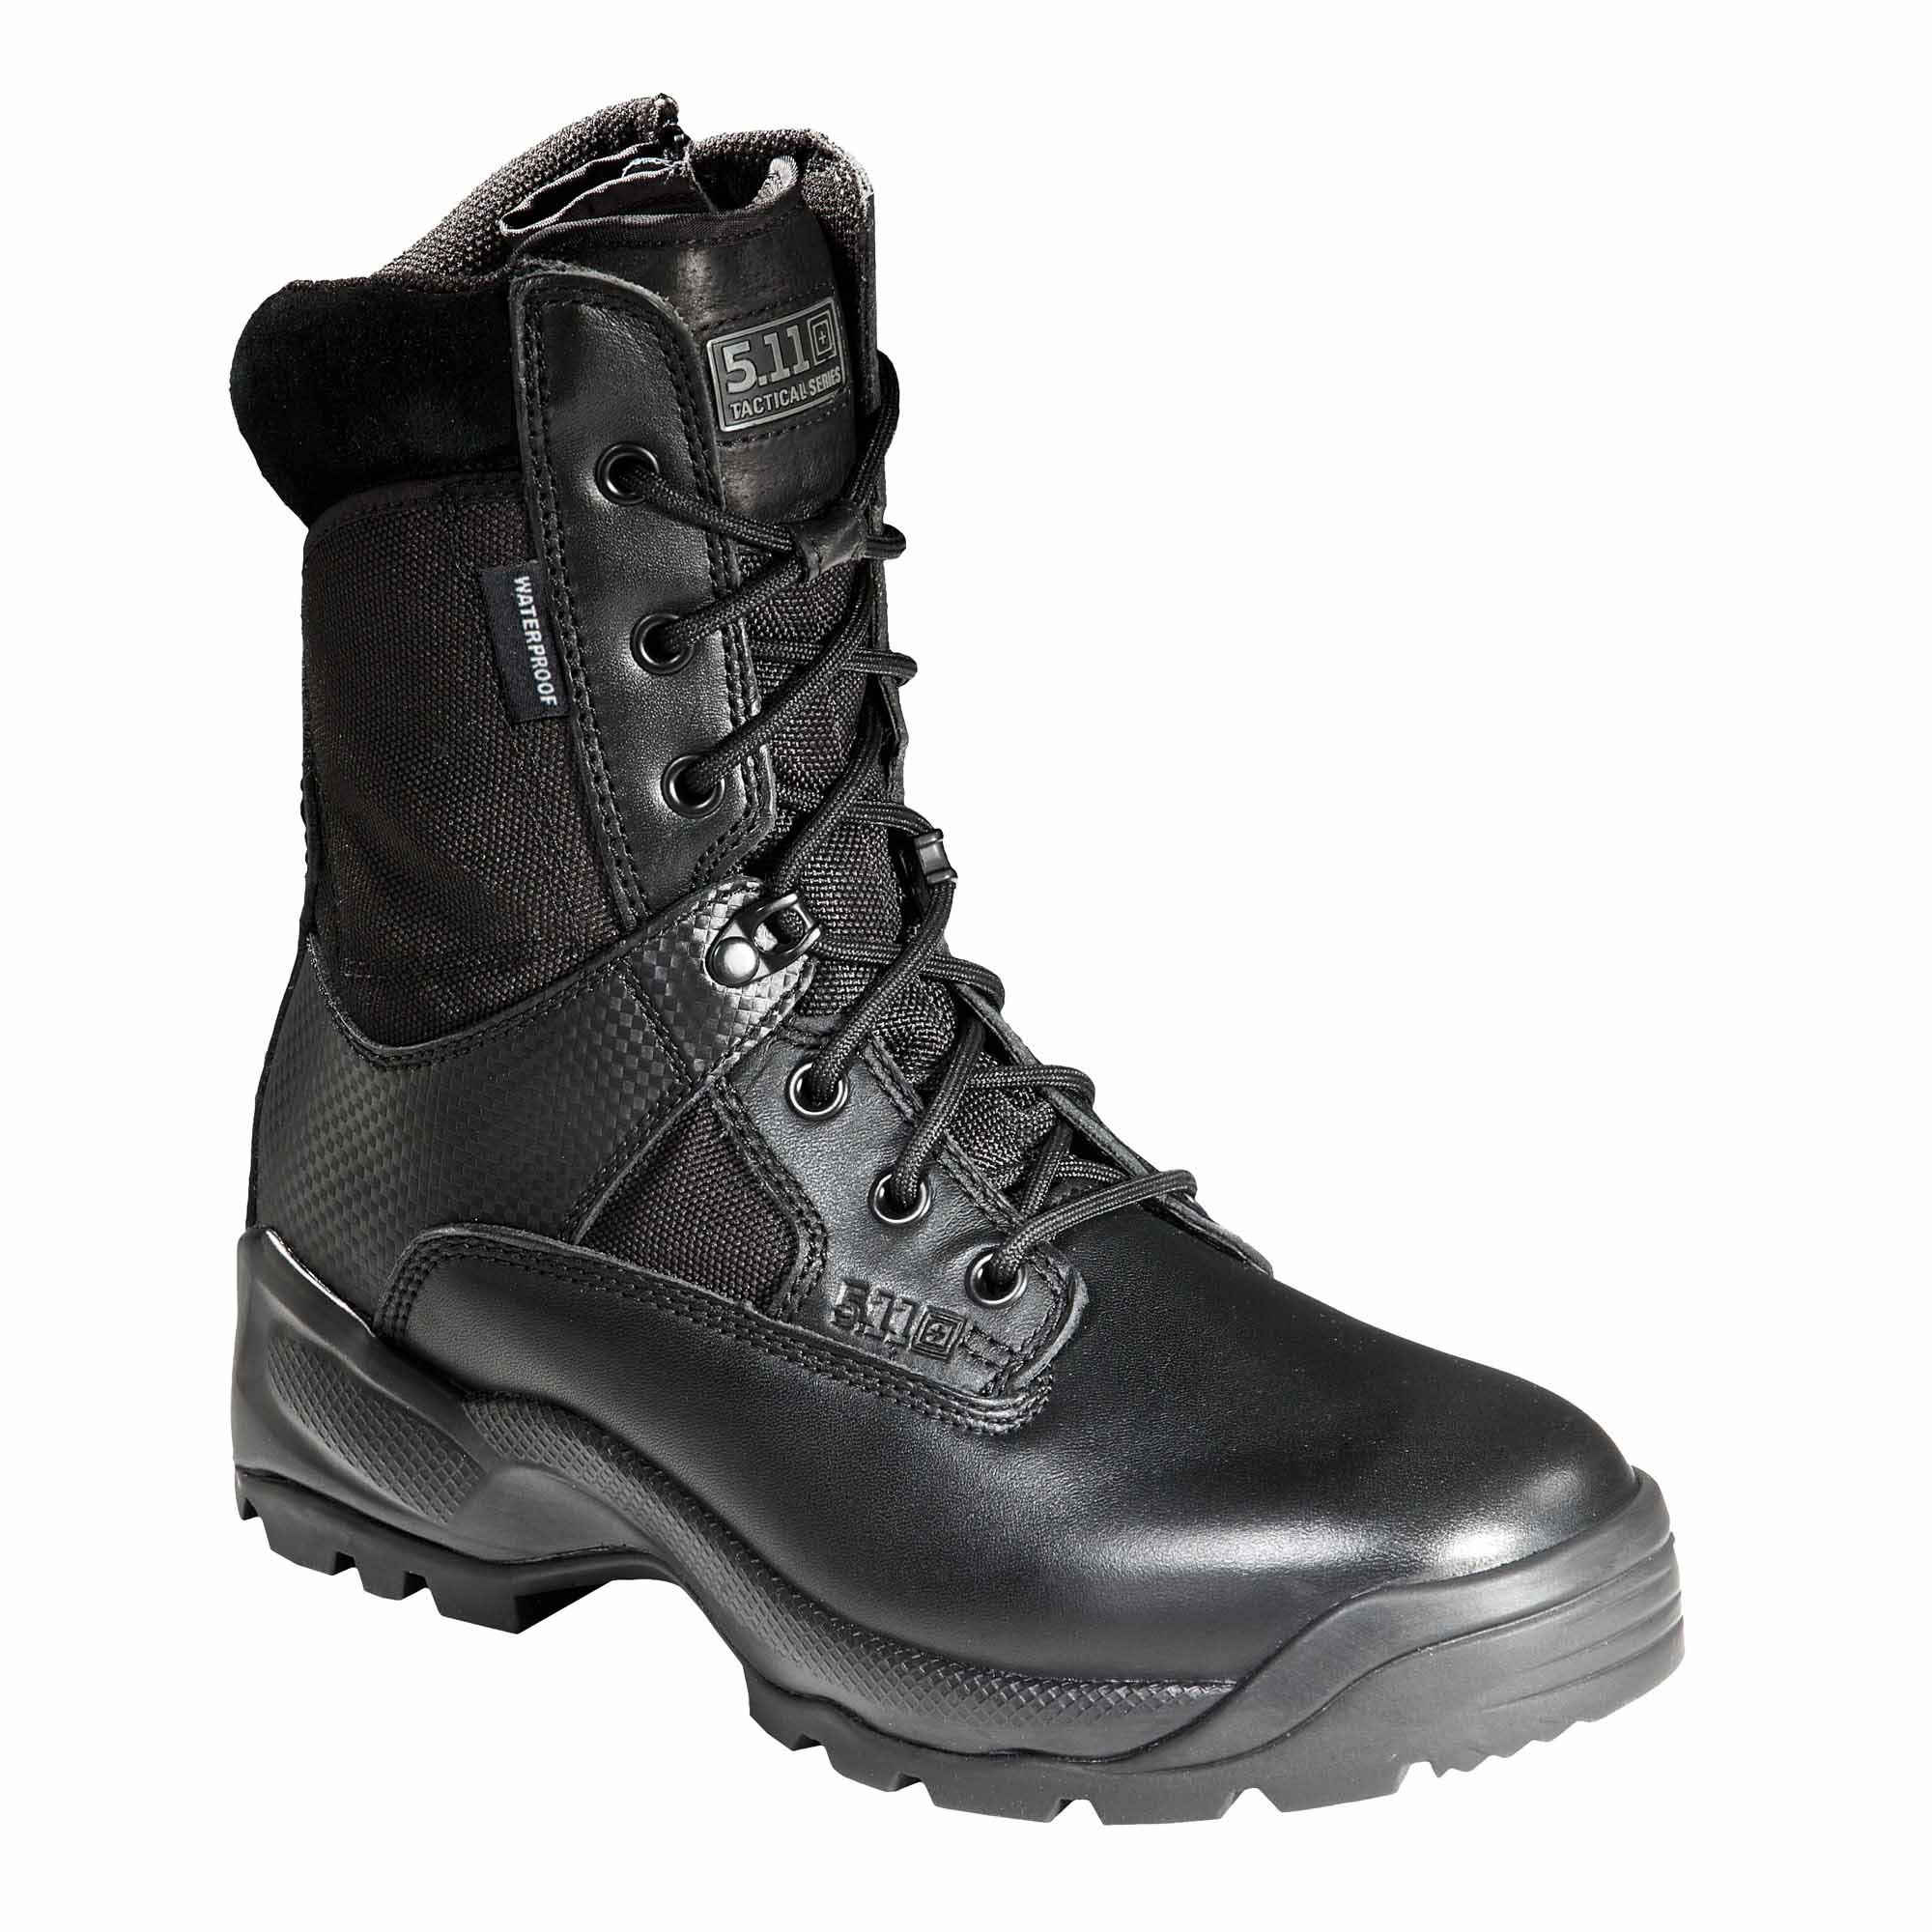 5.11 A.T.A.C 8 Inch Storm Boot with Side Zip | 12004-511